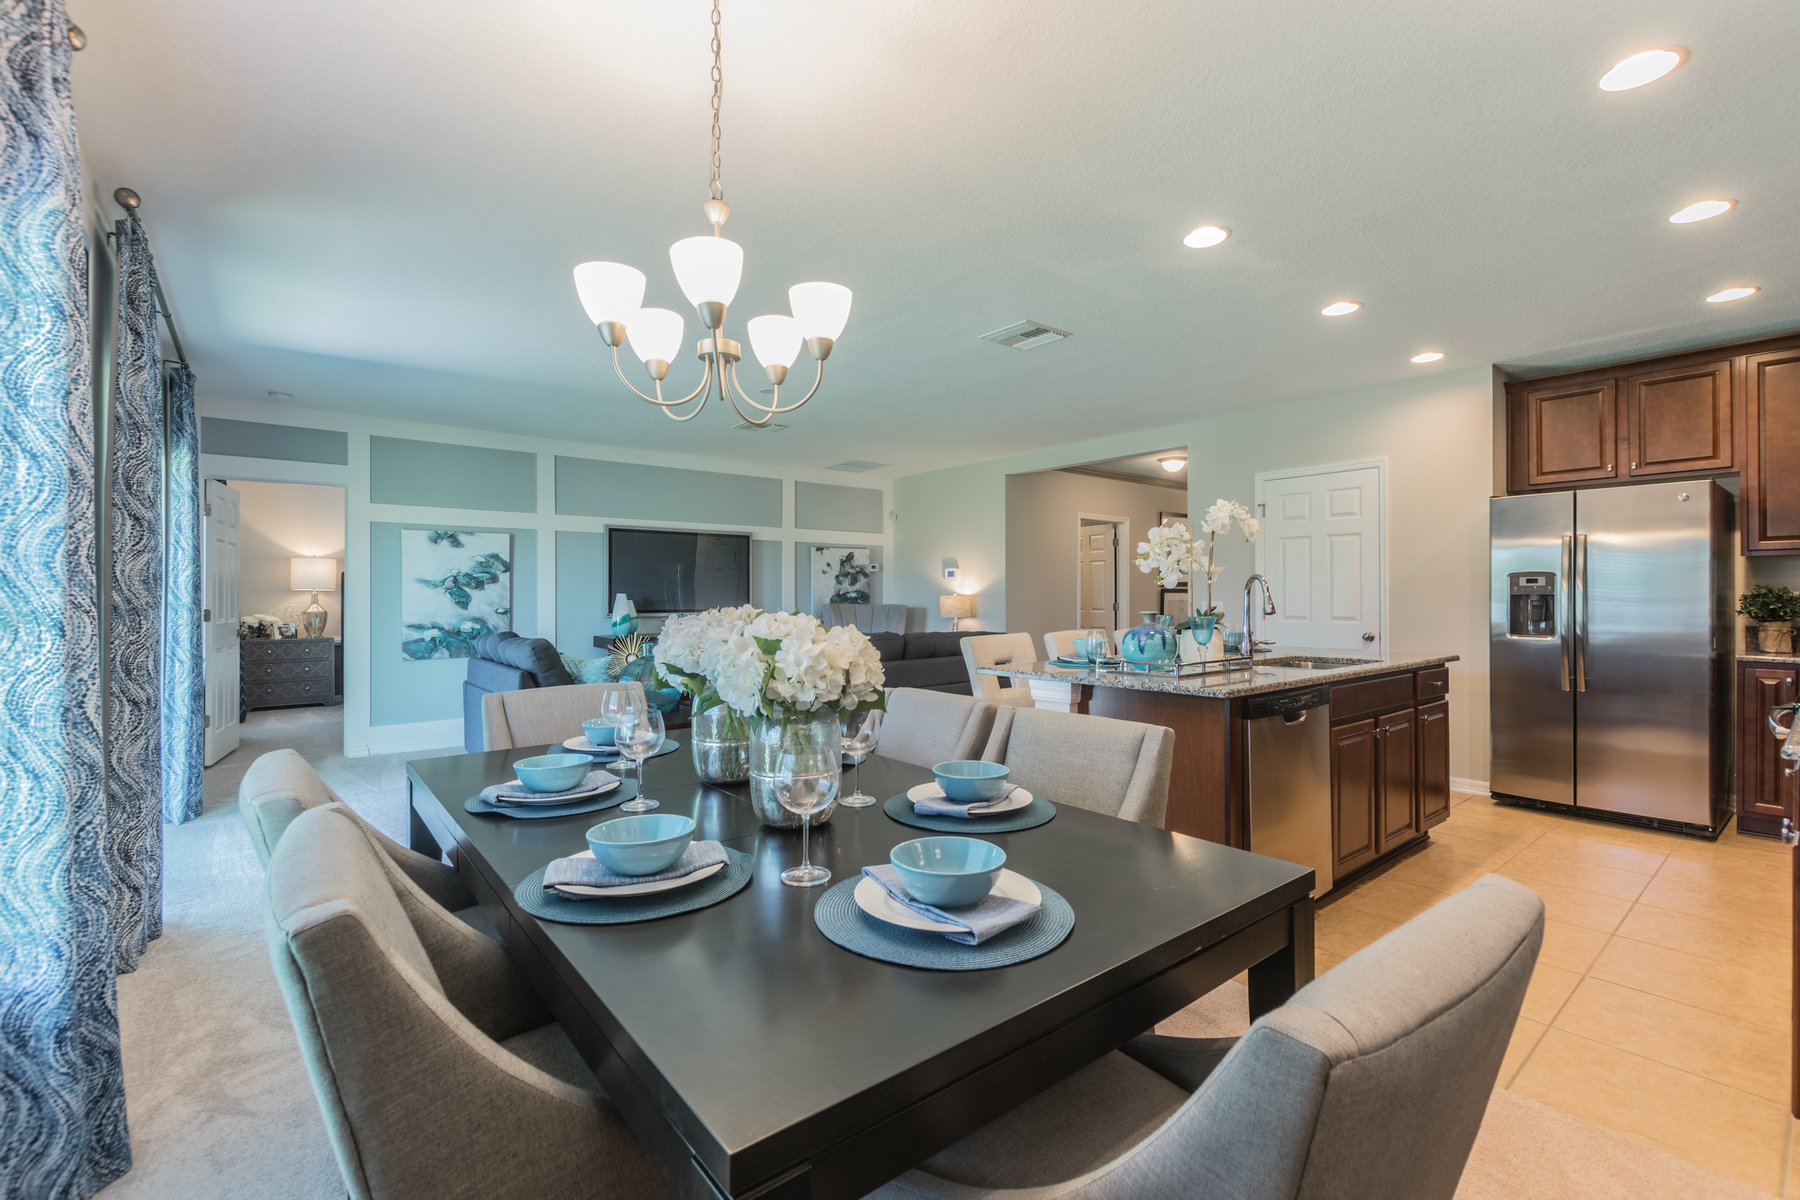 New Home in Spring Hill - The Ventura - M/I Homes